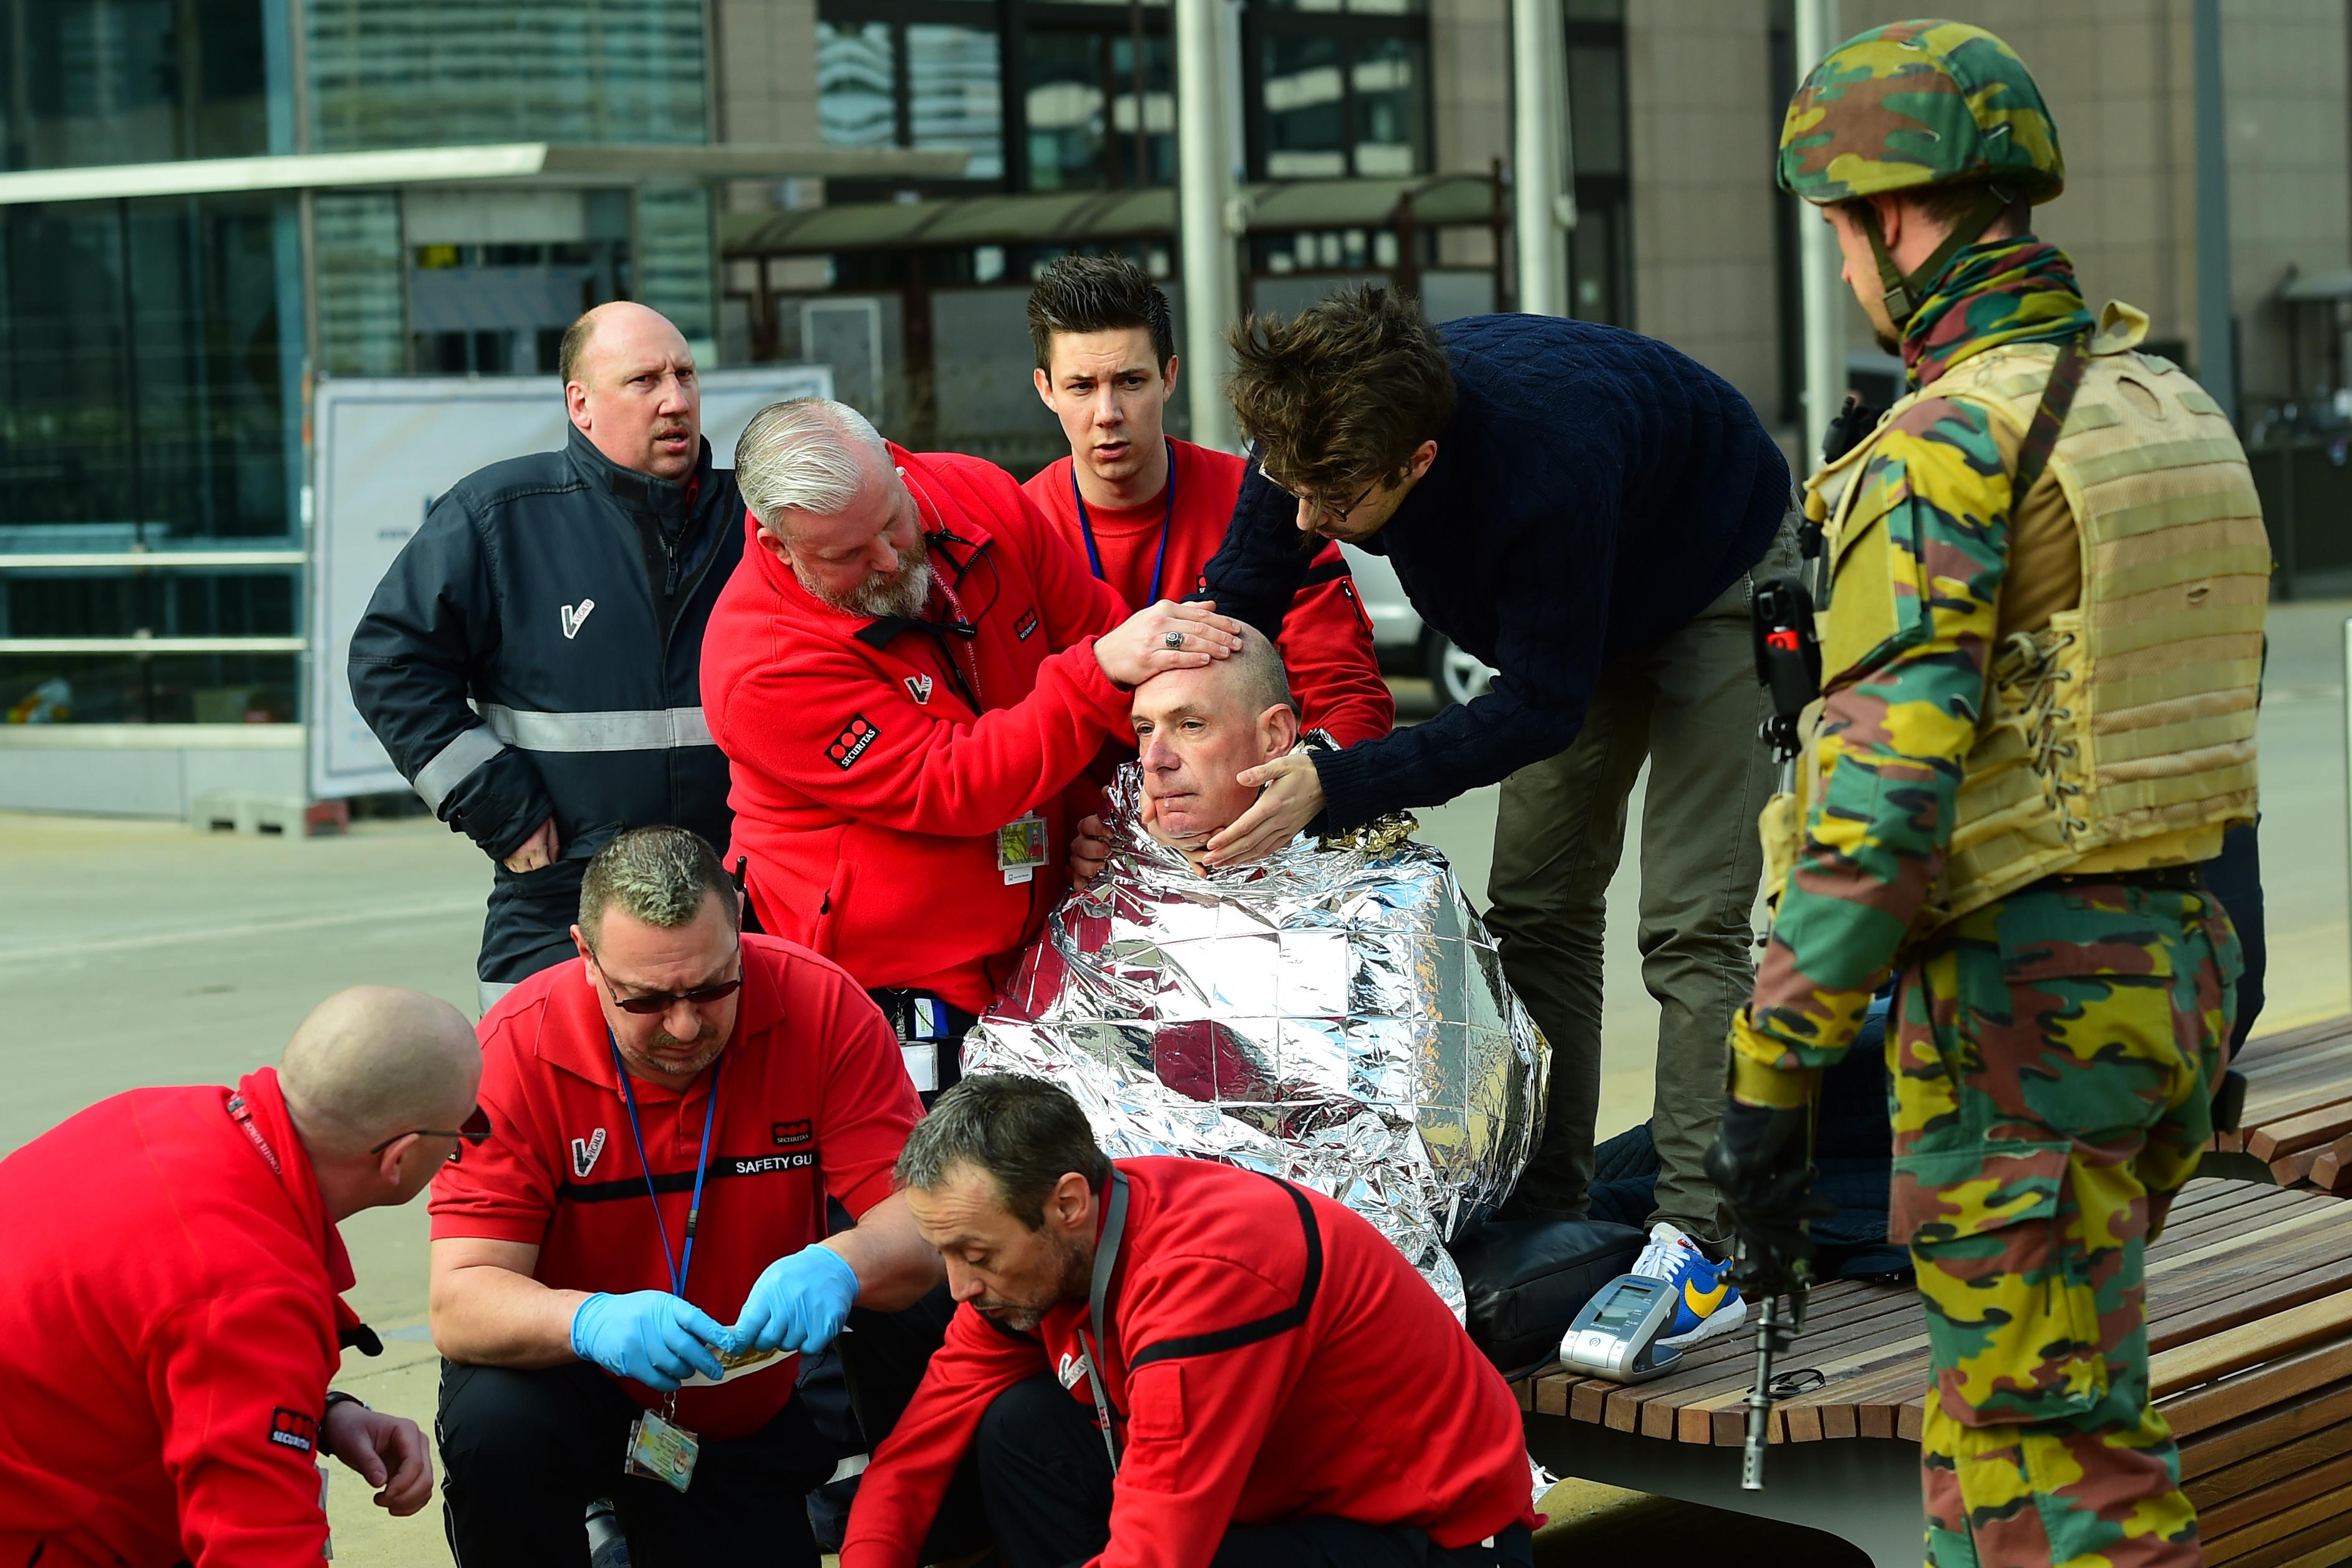 Brussels victim